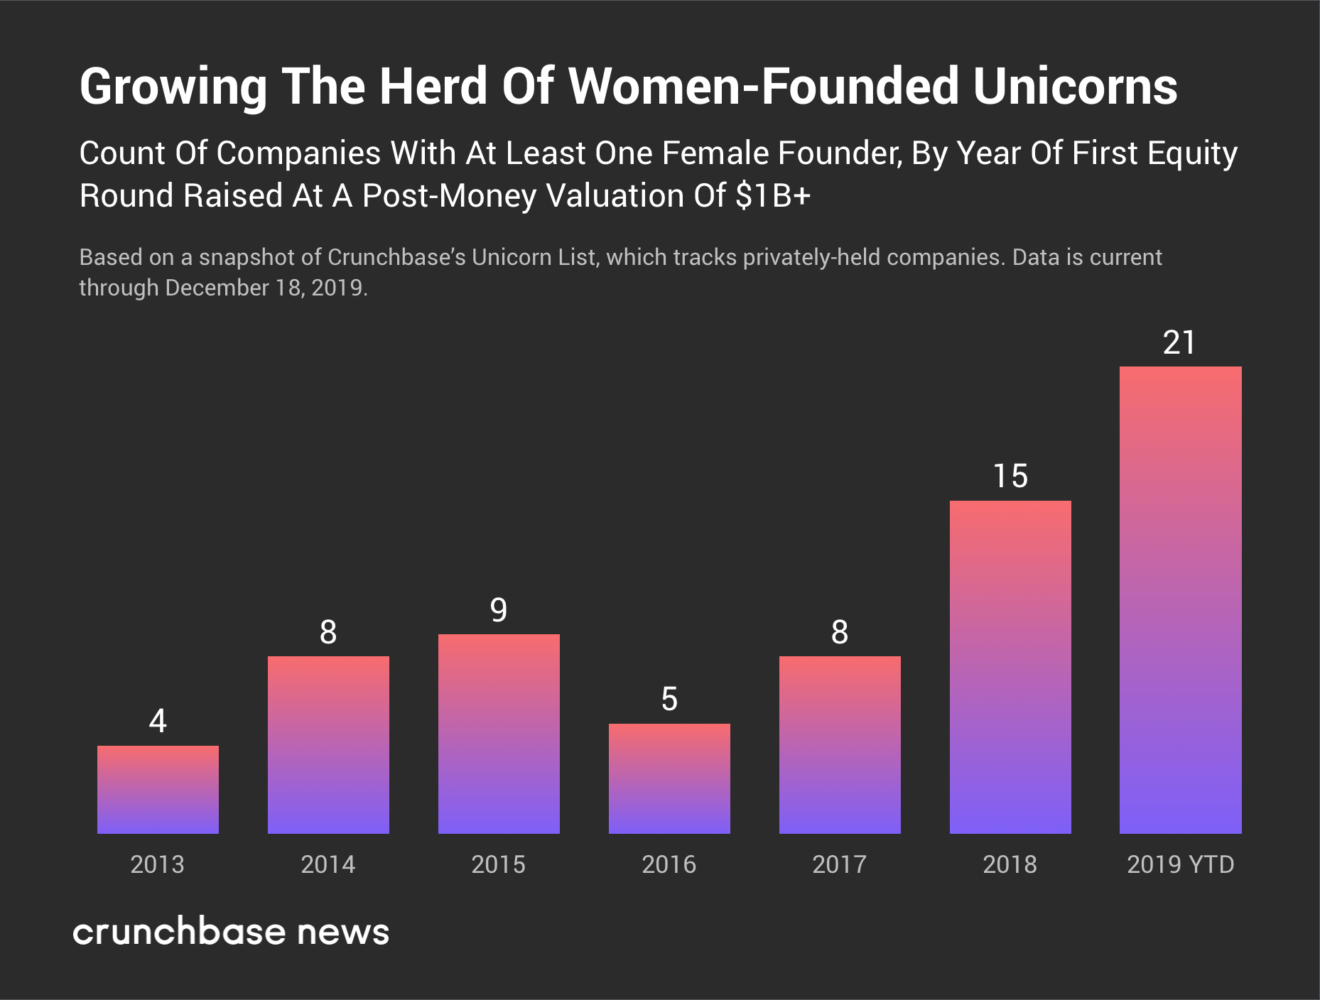 The number of companies co-founded by woman, estimated at 1+ billion per year of the first capital raised, Crunchbase data December 18, 2019